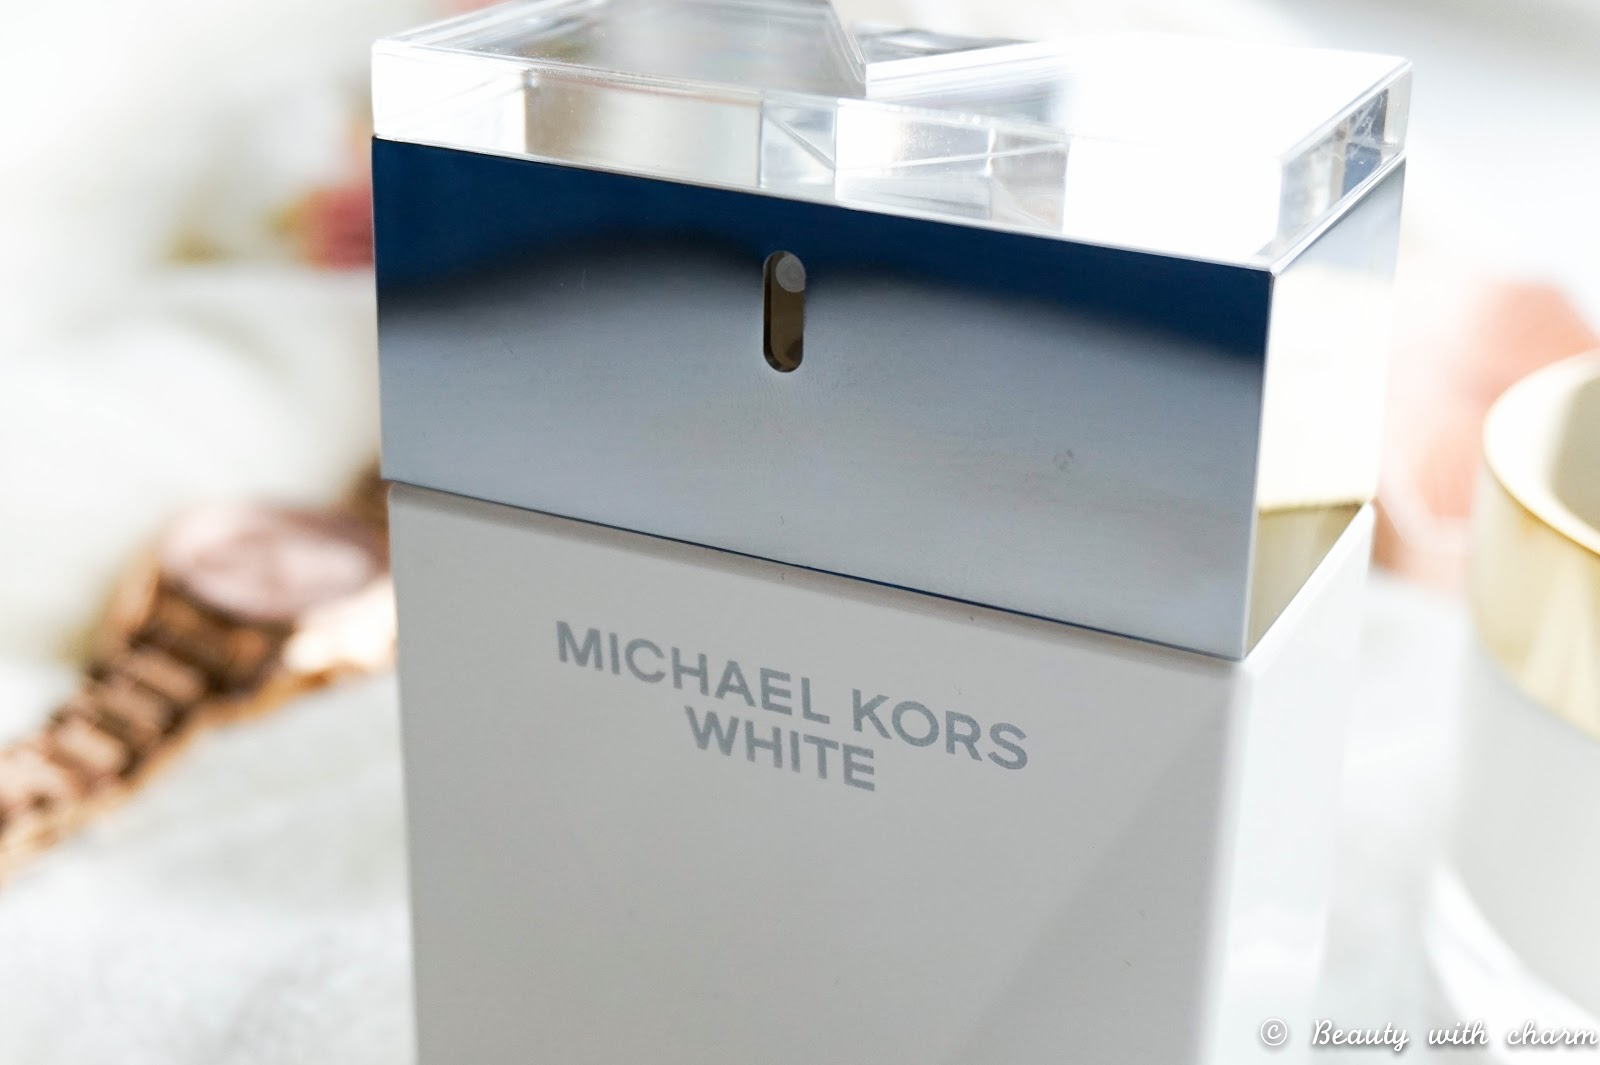 Michael Kors Indulgent Body Cream, Michael Kors White Perfume